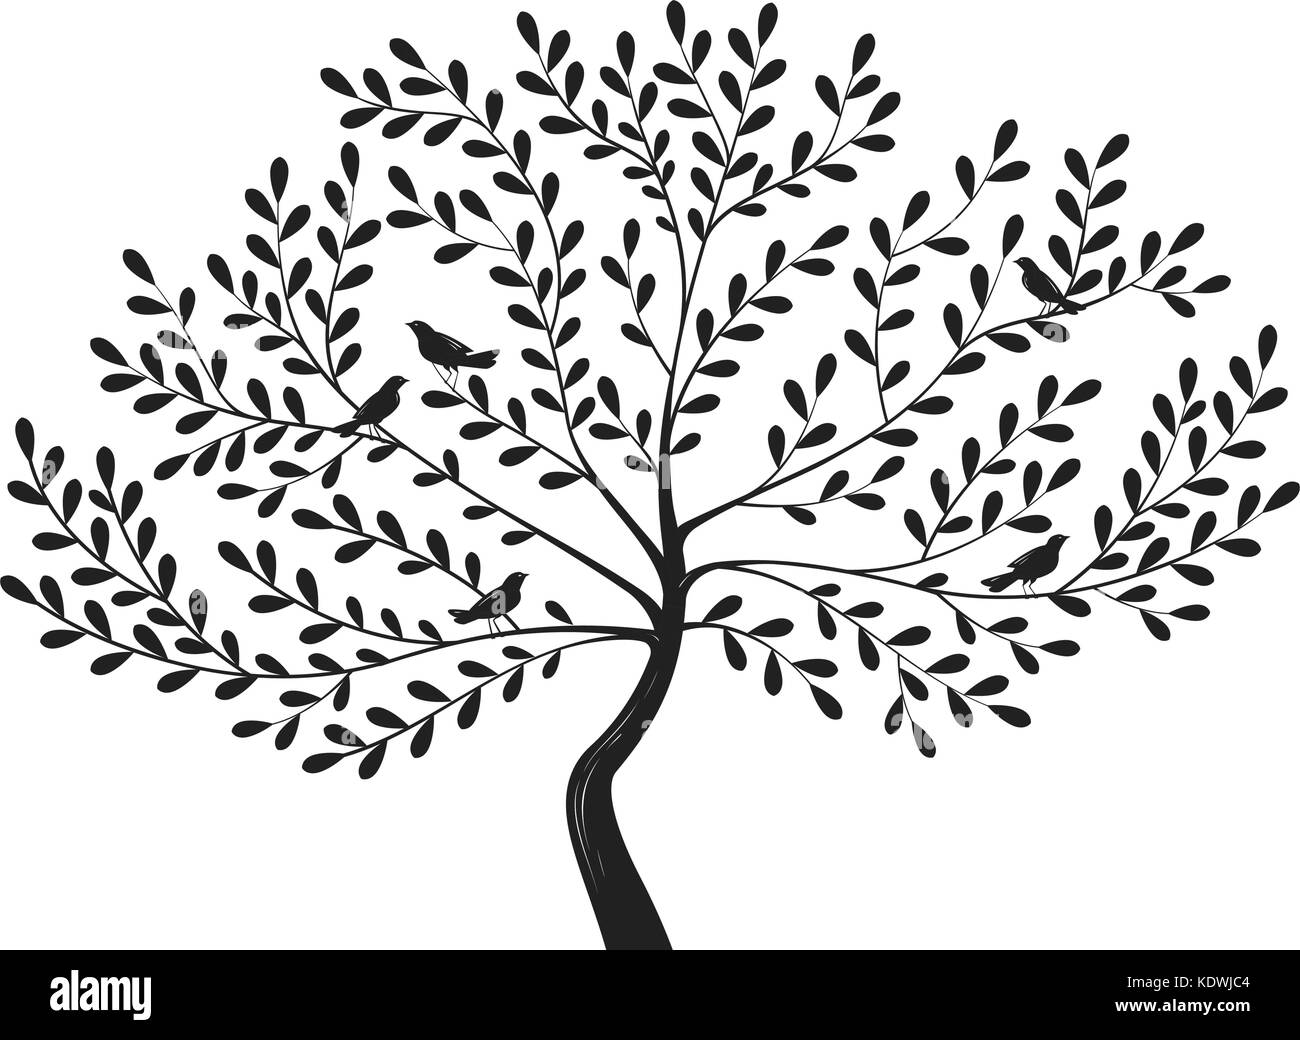 decor search vector clipart and illustration tree decorative drawings